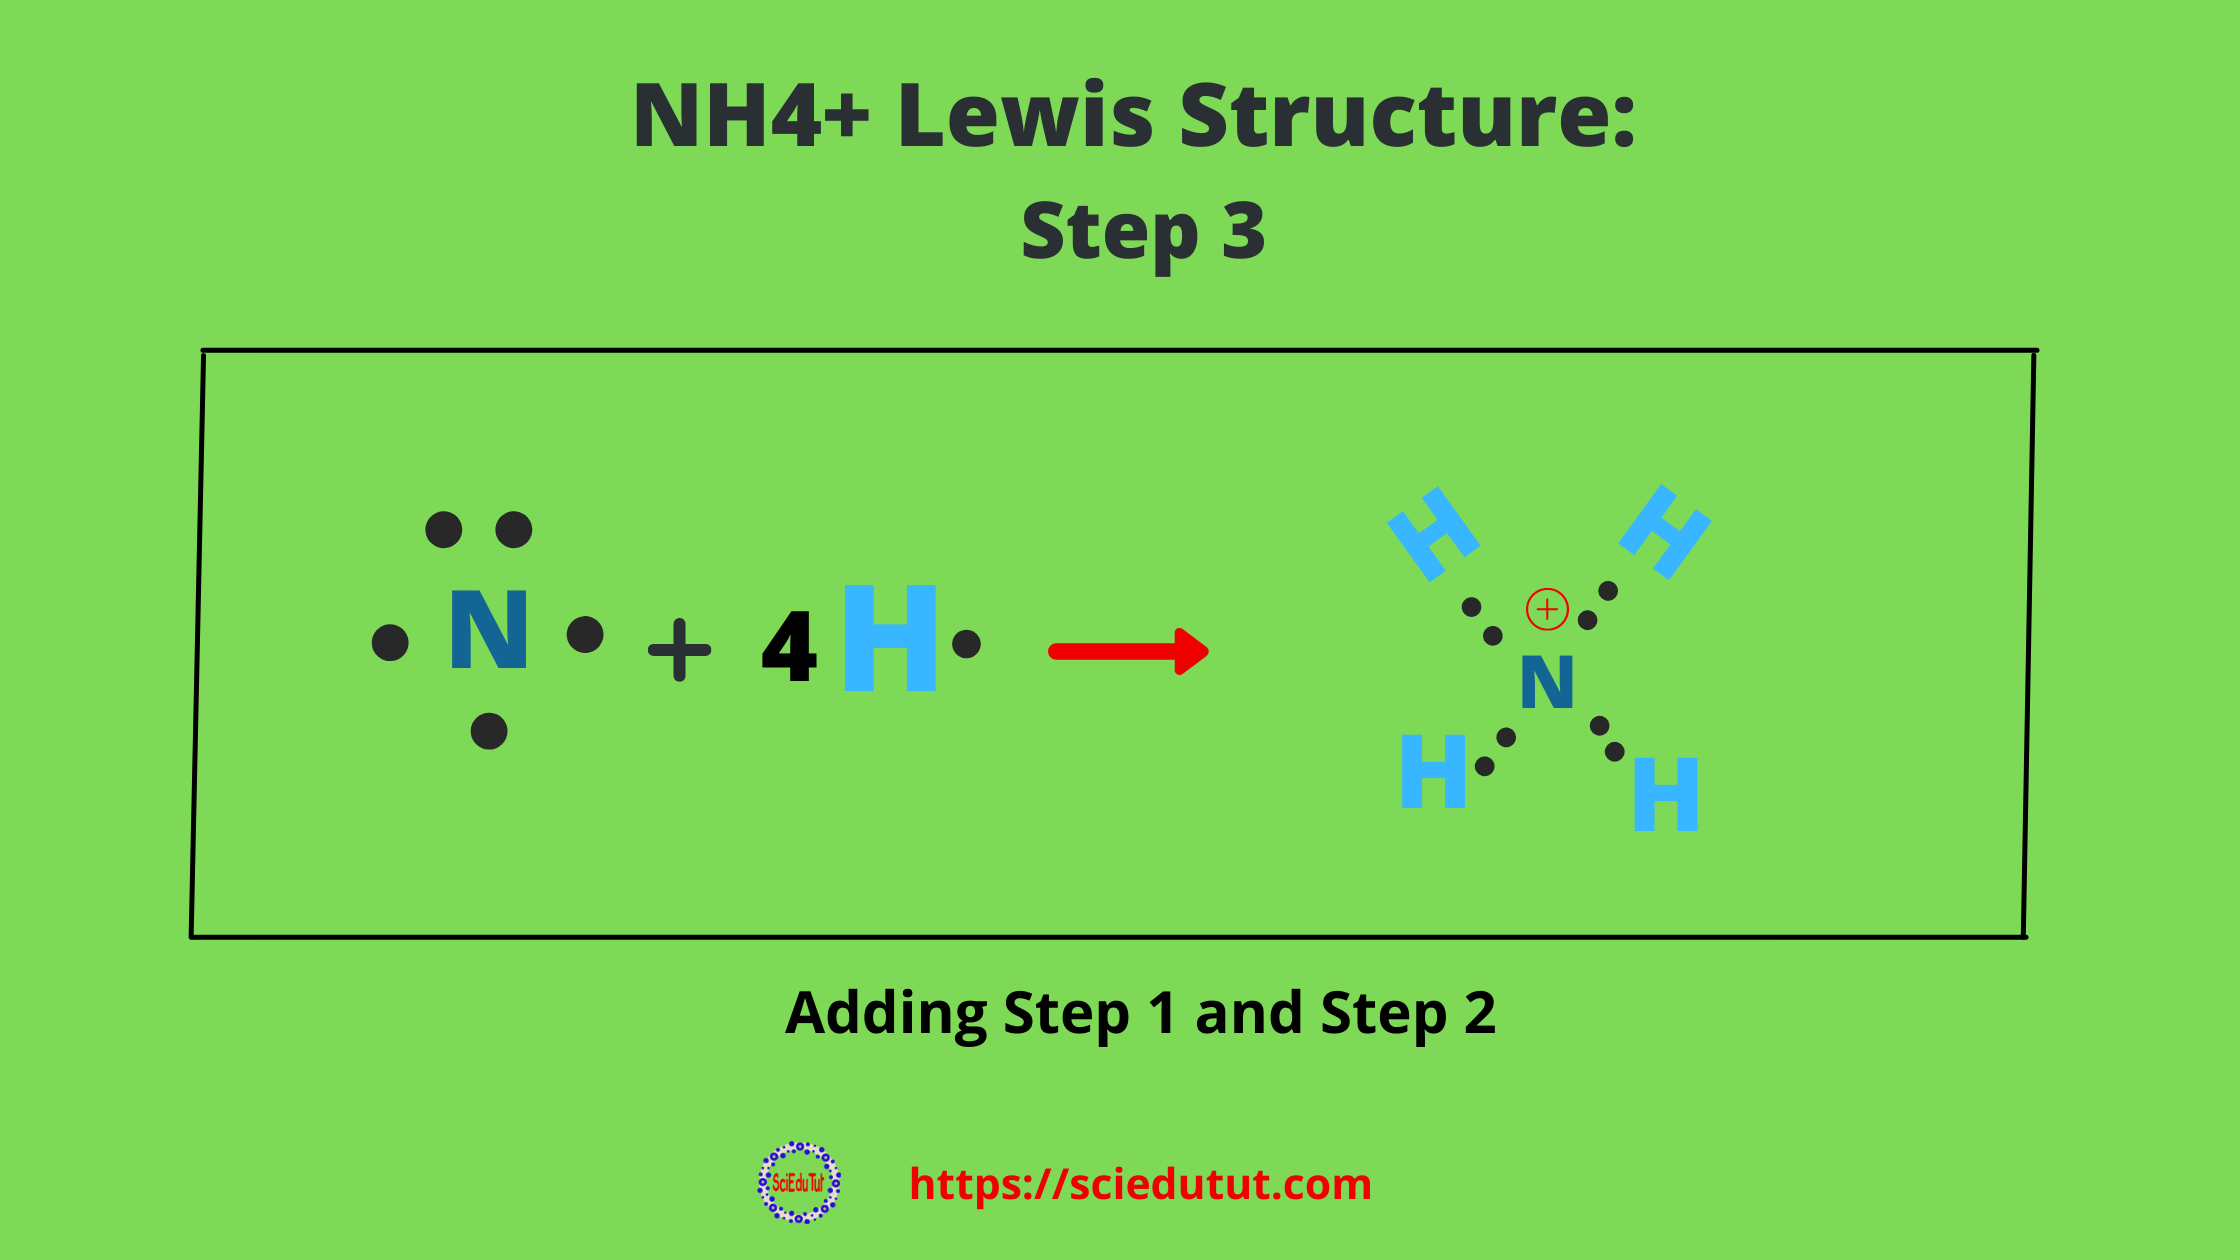 How to draw NH4+ Lewis Structure?